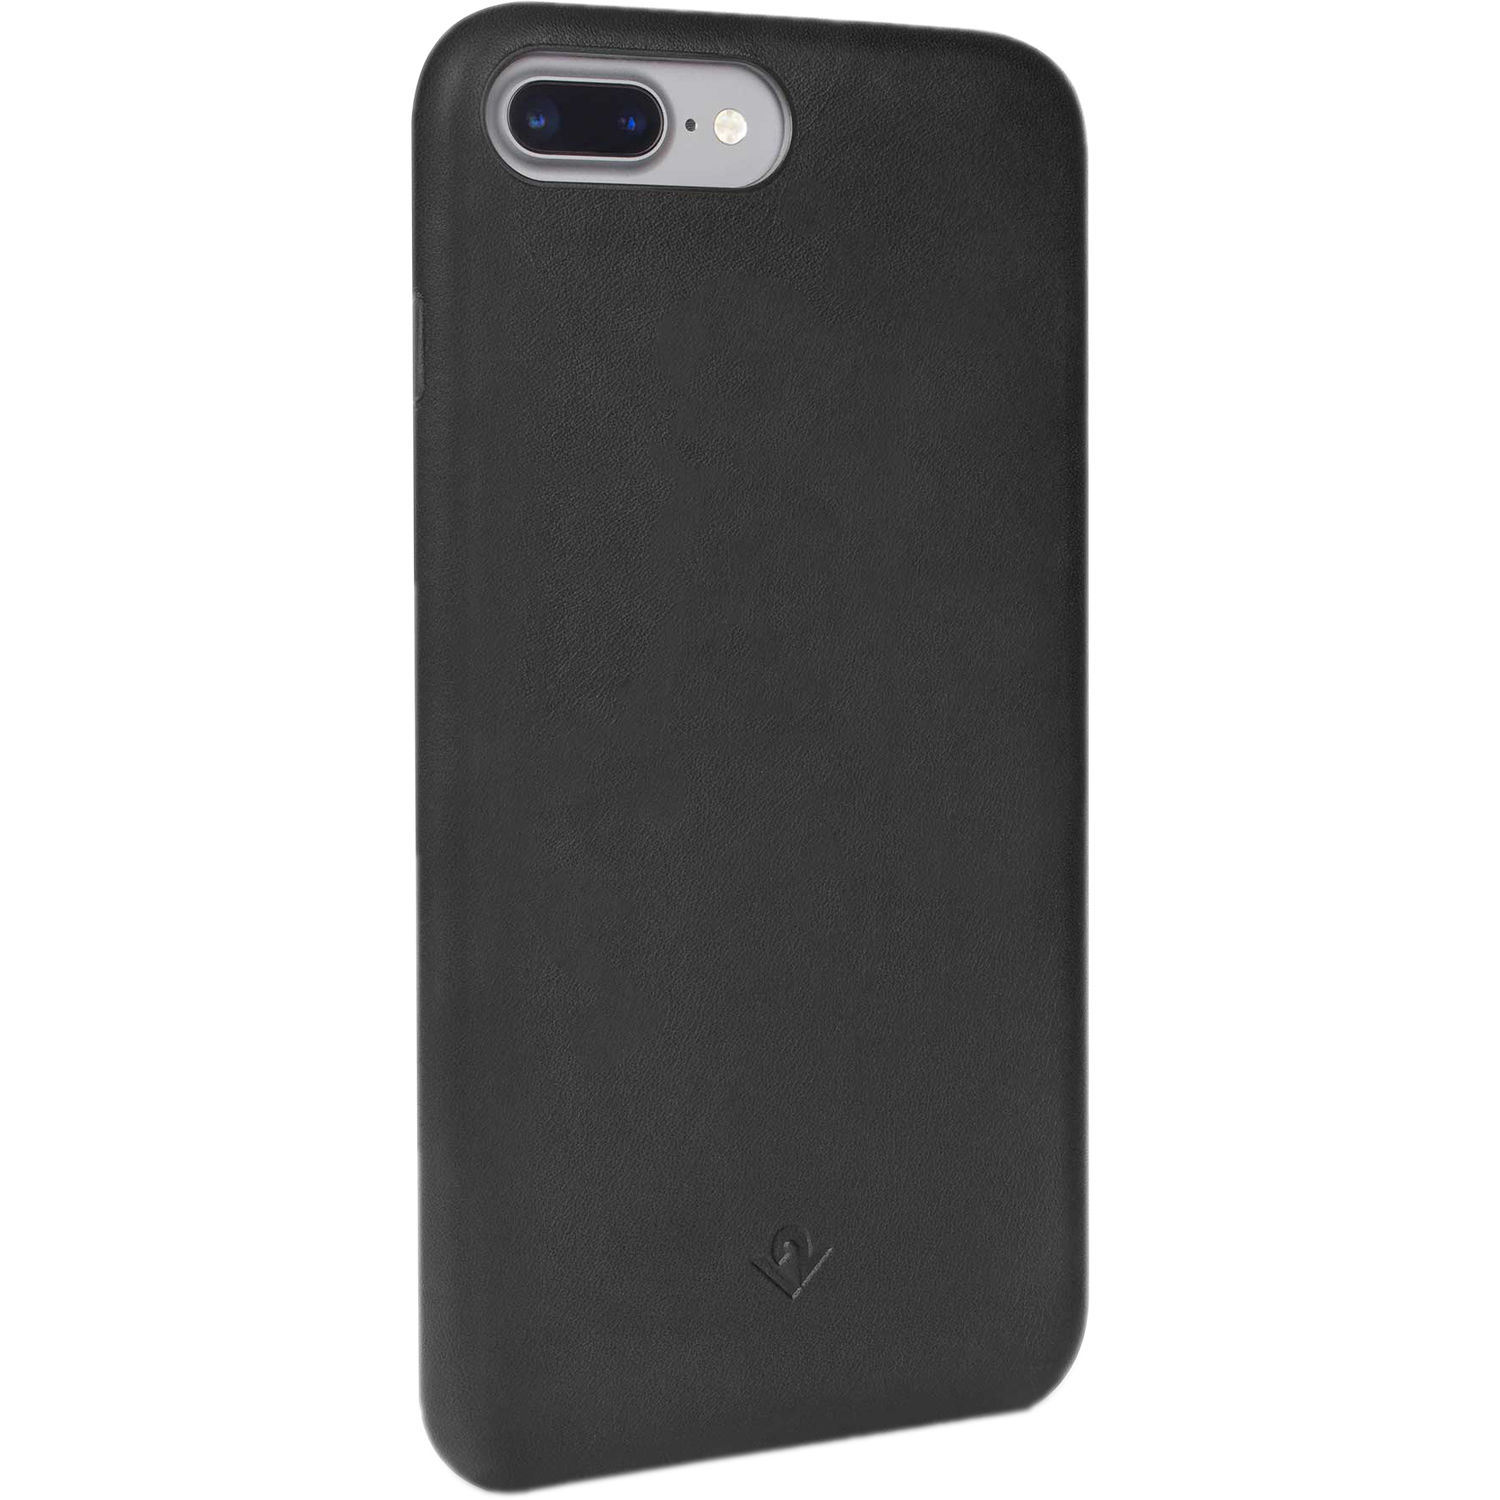 twelve south relaxed leather case review